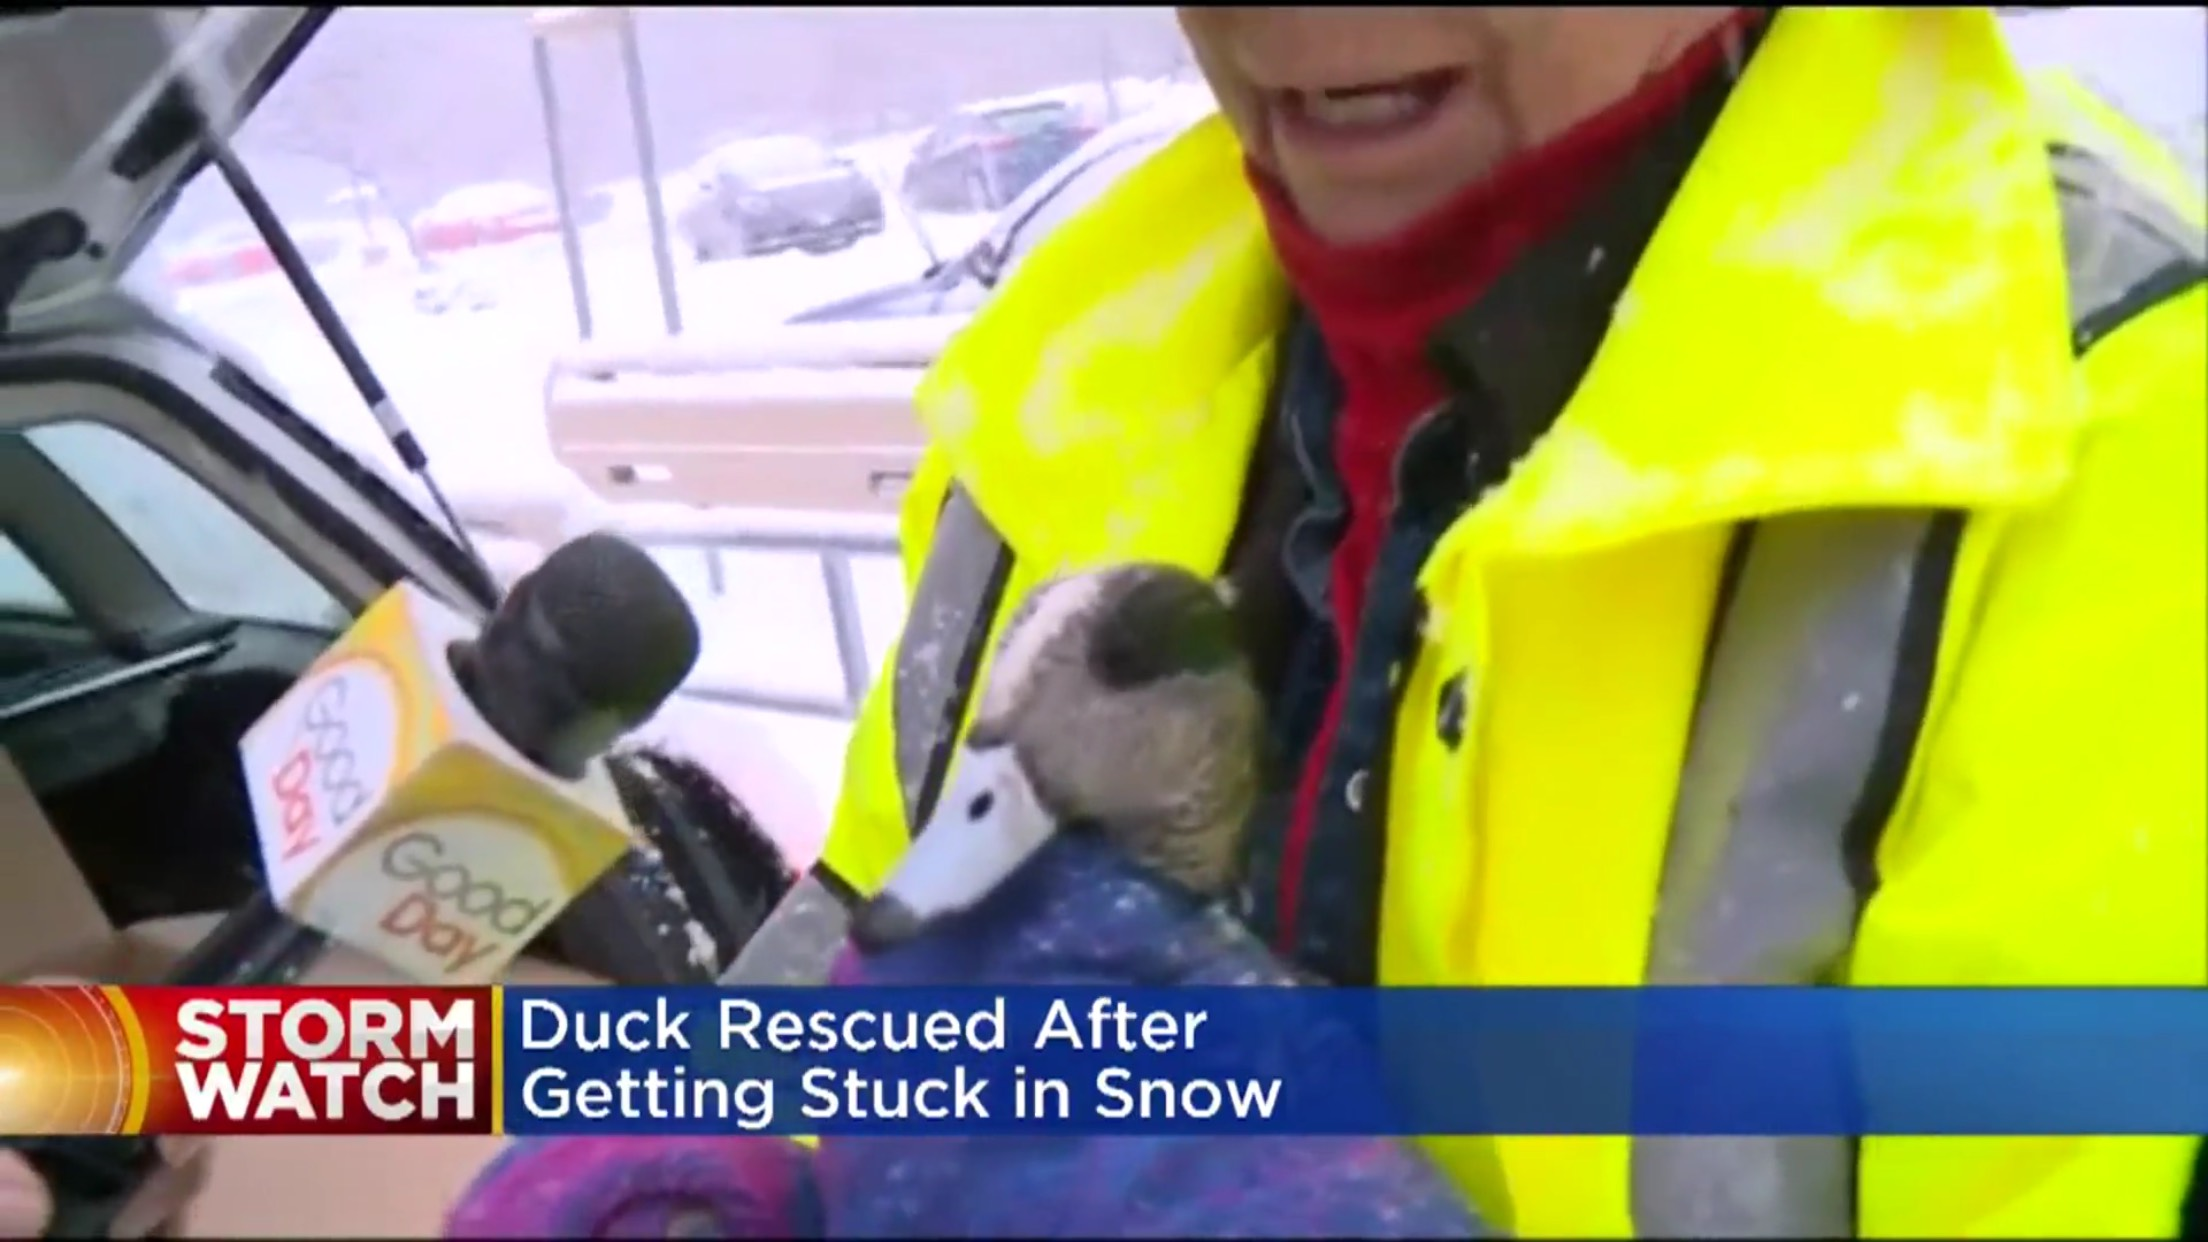 Duck Rescued After Getting Stuck in Snow